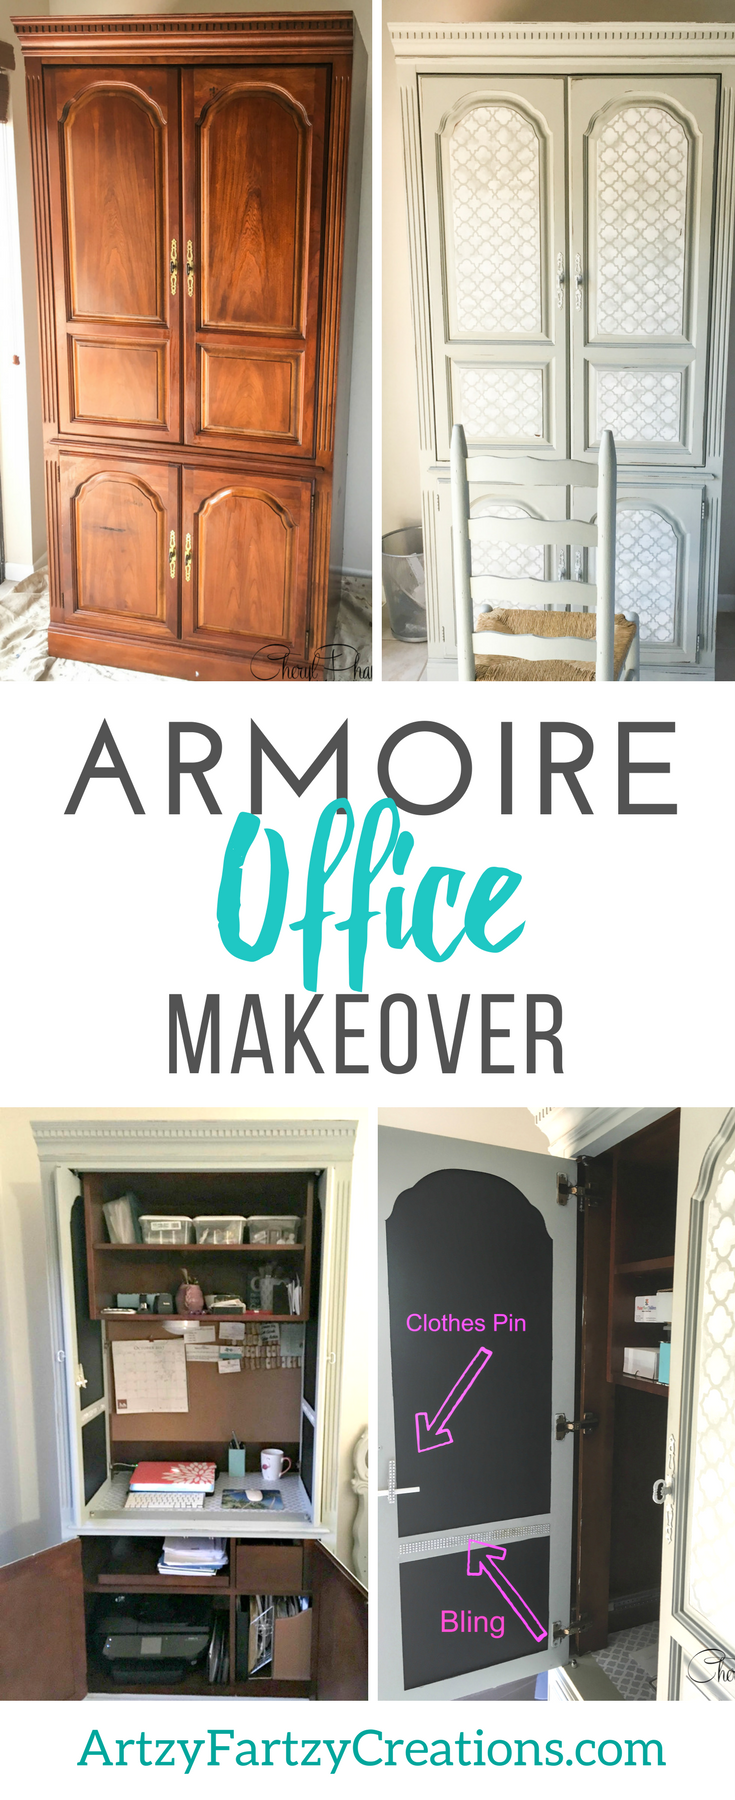 A great space saver! Office in an Armoire by Cheryl Phan | Office Organization Ideas | Armoire Office Ideas | Wardrobe Makeover | Furniture Painting Tips | Painted Furniture | Functional Furniture | Home Office Ideas | Office Space